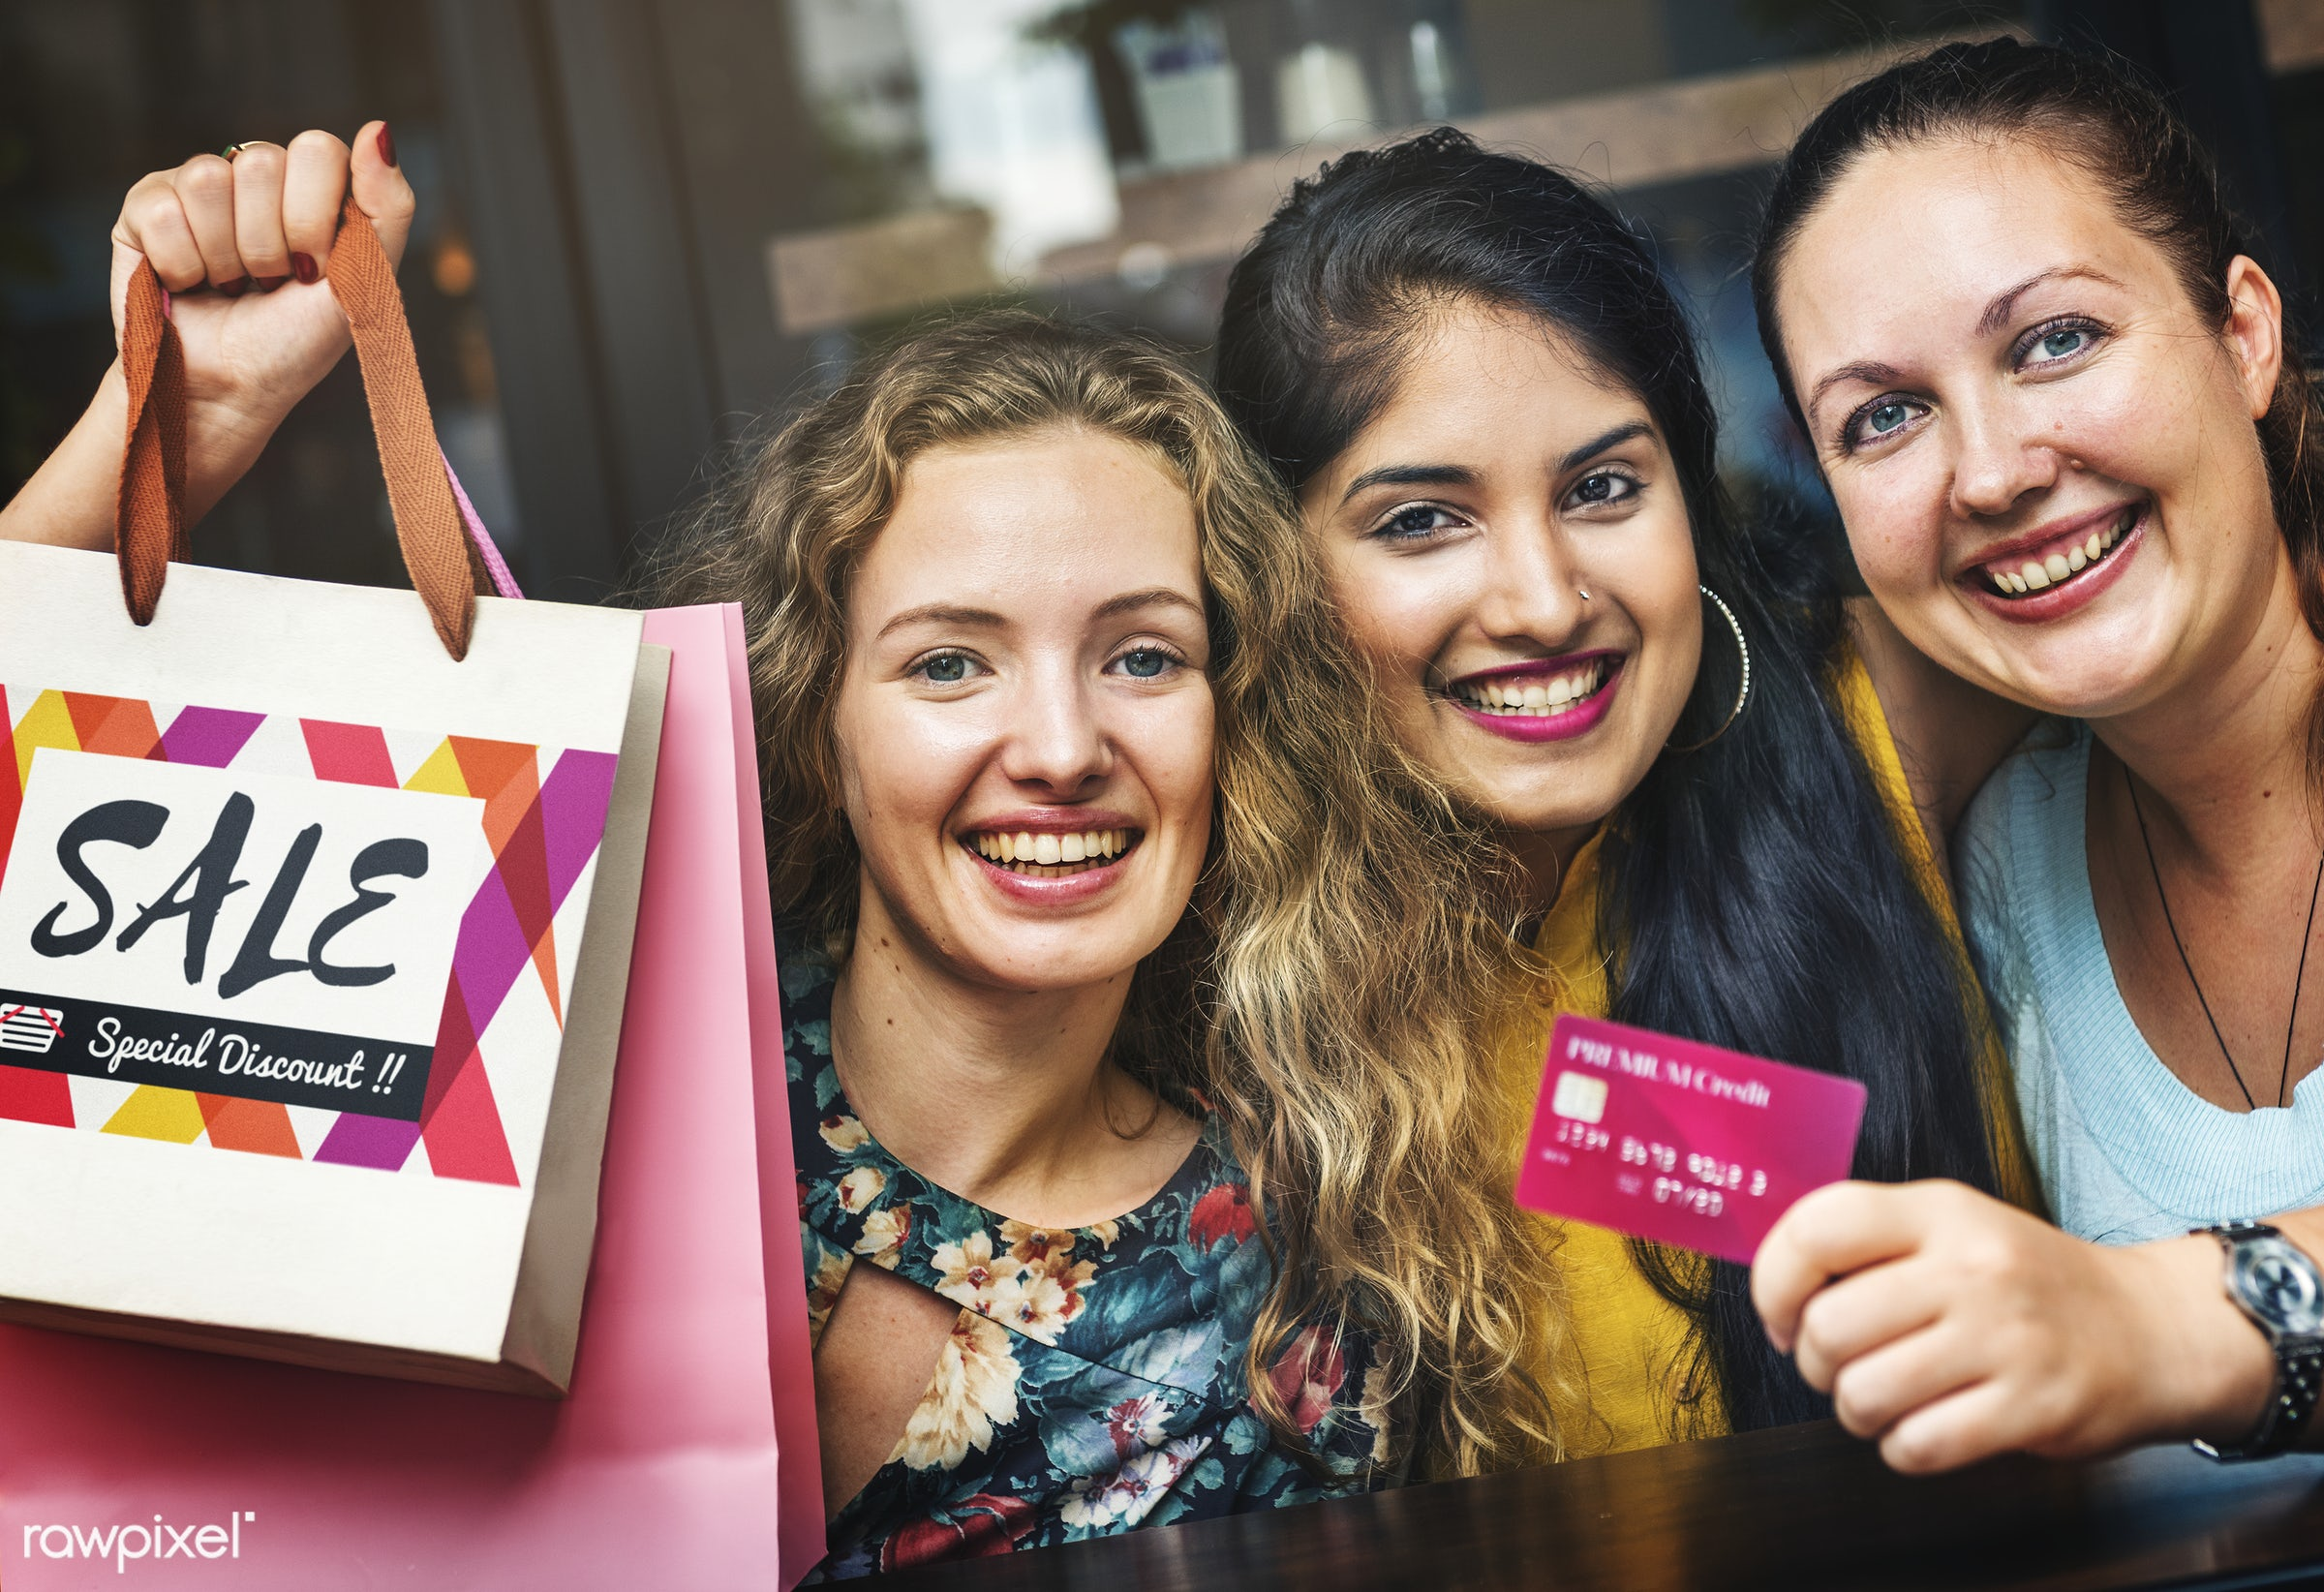 Women shopping with a credit card - big sale, bonding, bright, buying, casual, cheap, cheerful, commerce, credit card,...